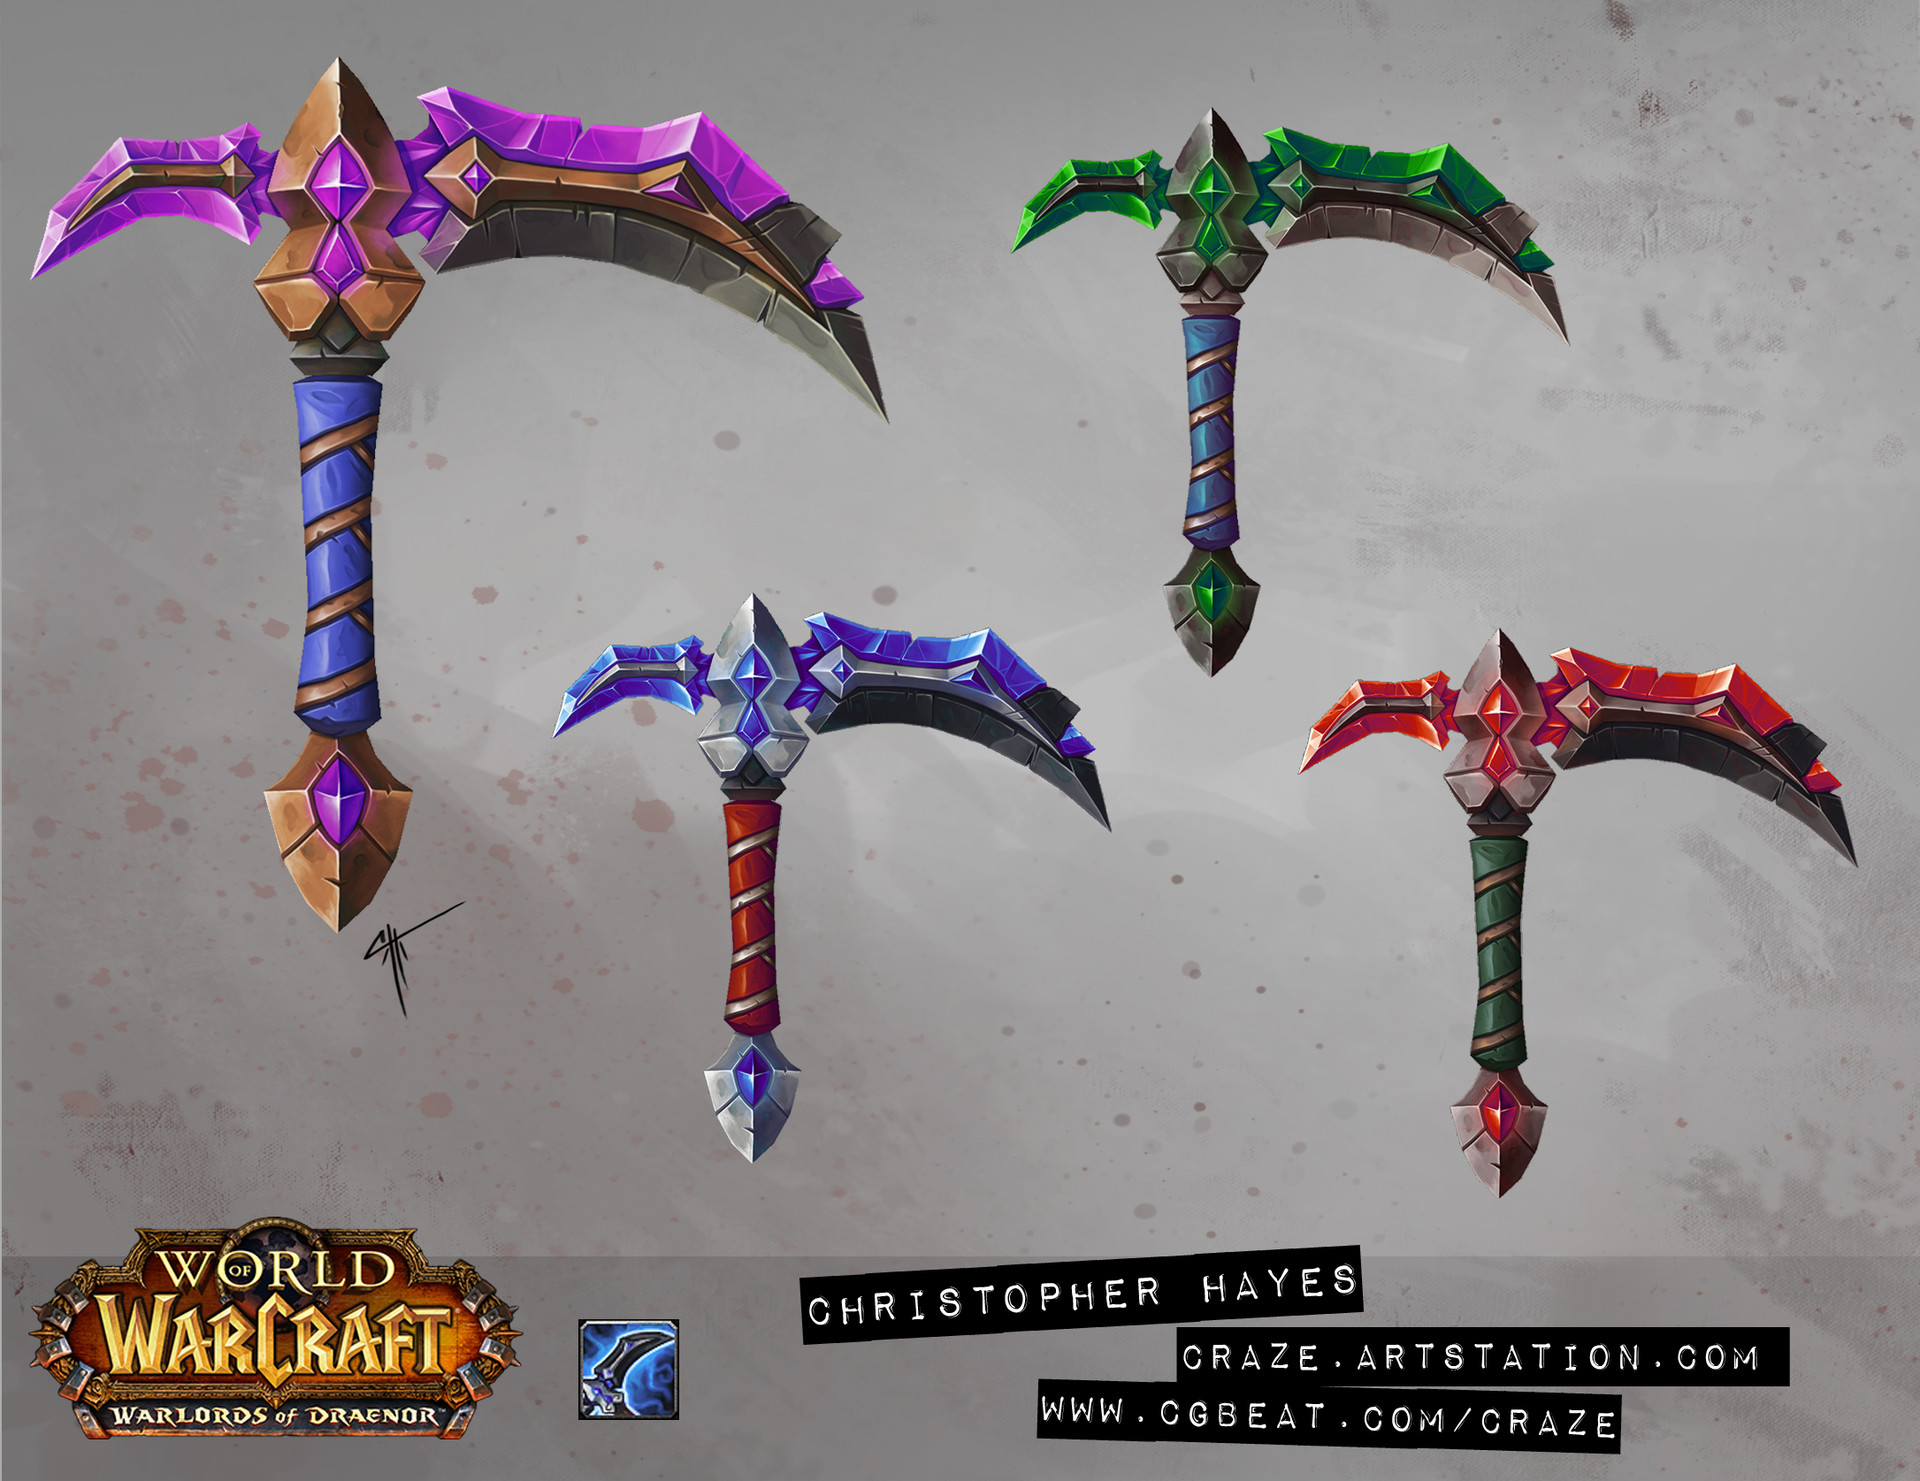 Christopher hayes axe 03 draenor